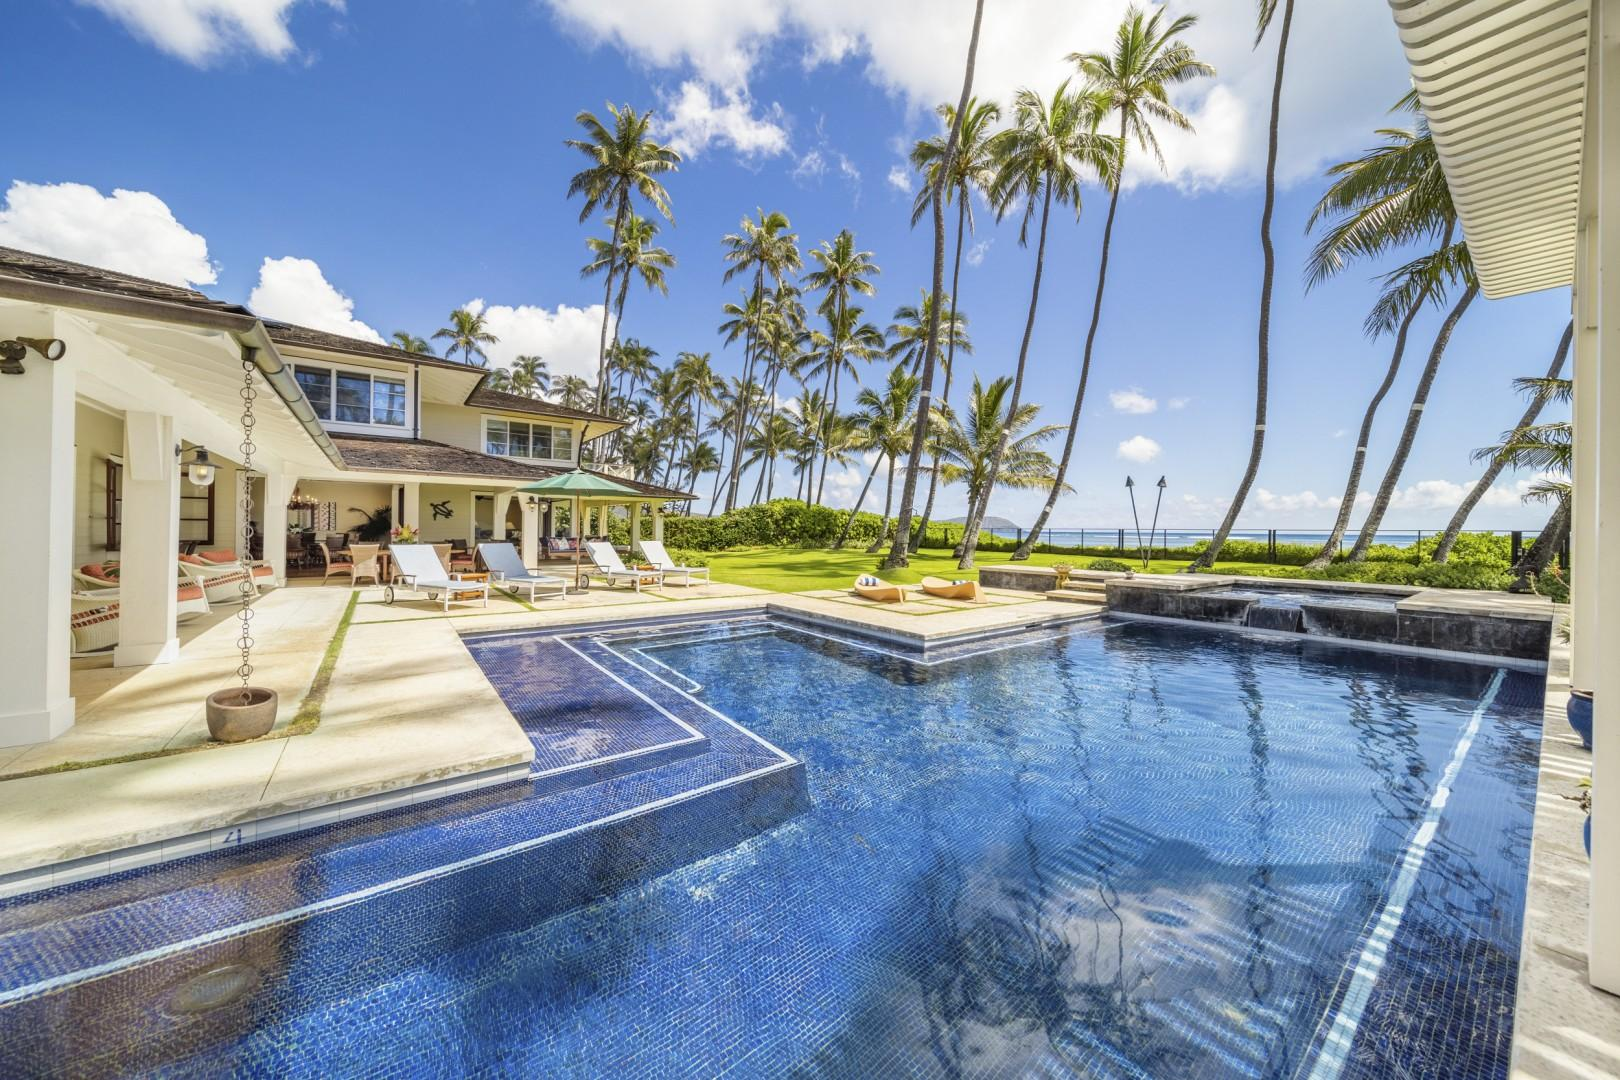 Luxurious pool area with views of the beach